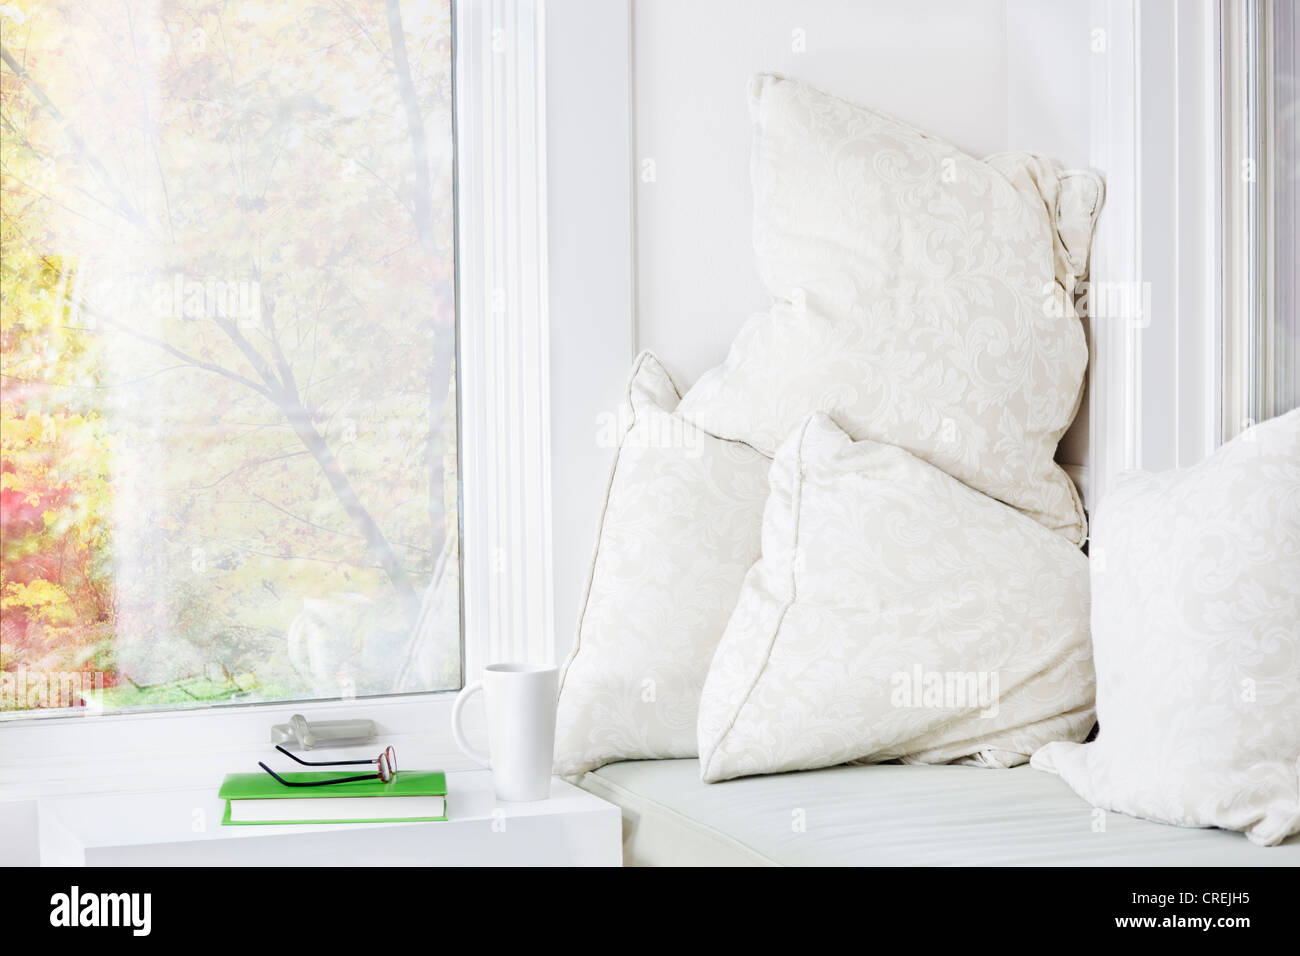 Window seat with cushions, book and mug; fall view - Stock Image